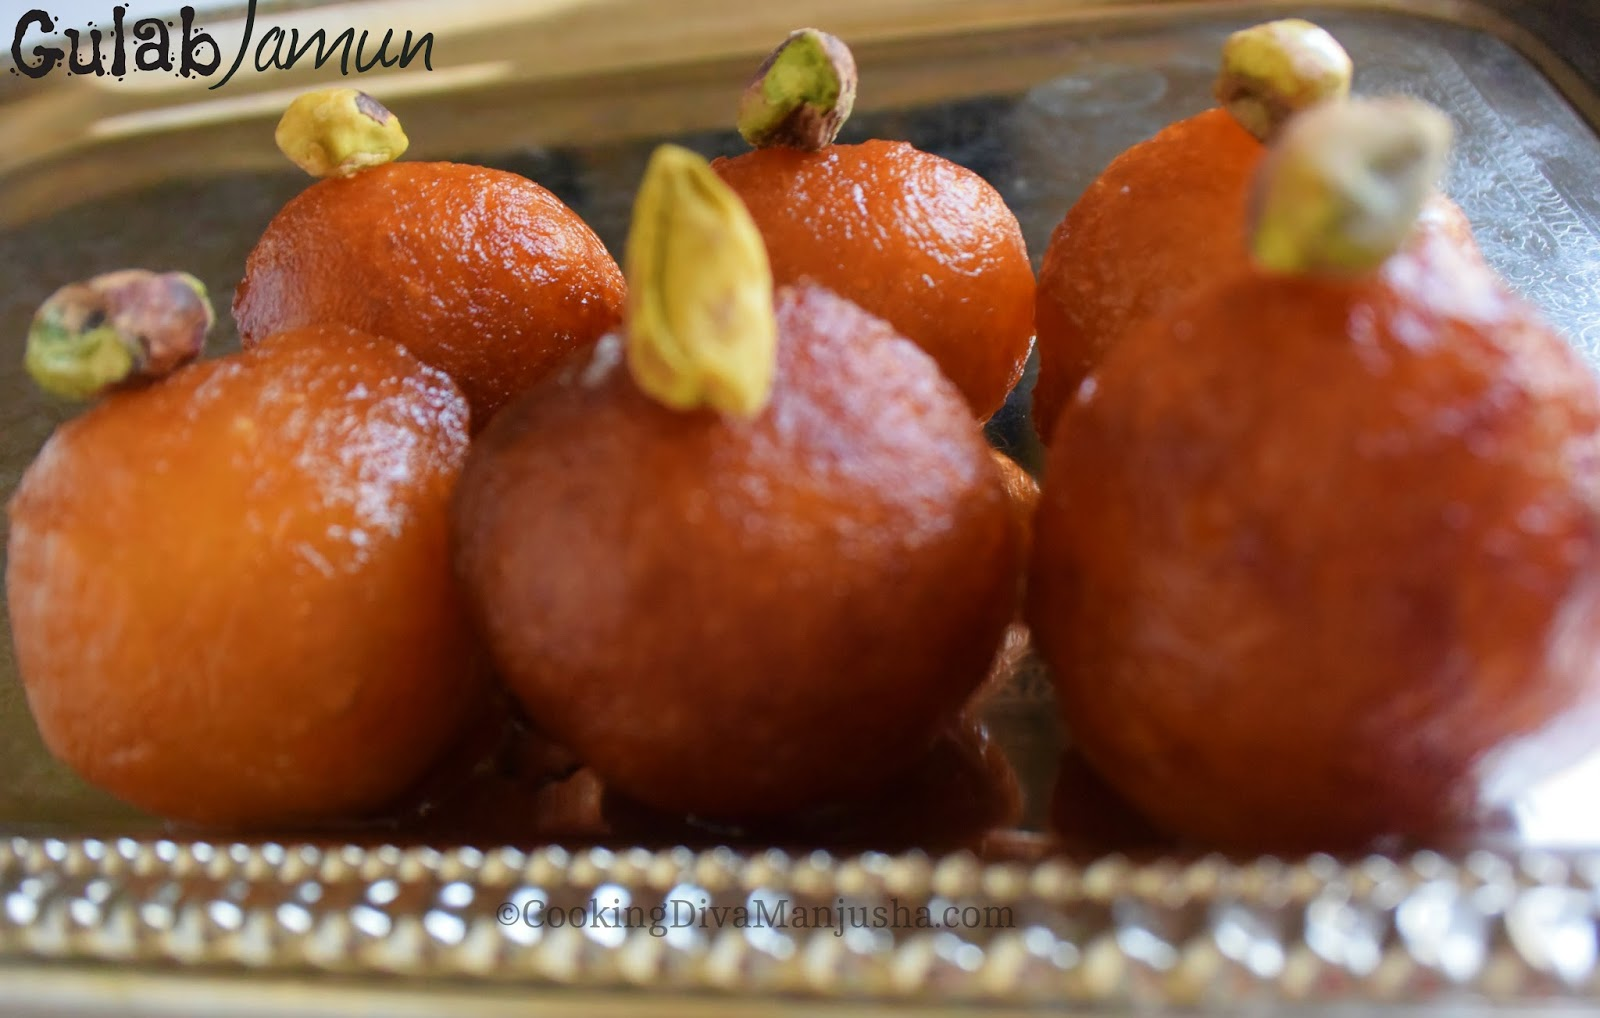 how to prepare gulab jamun in home